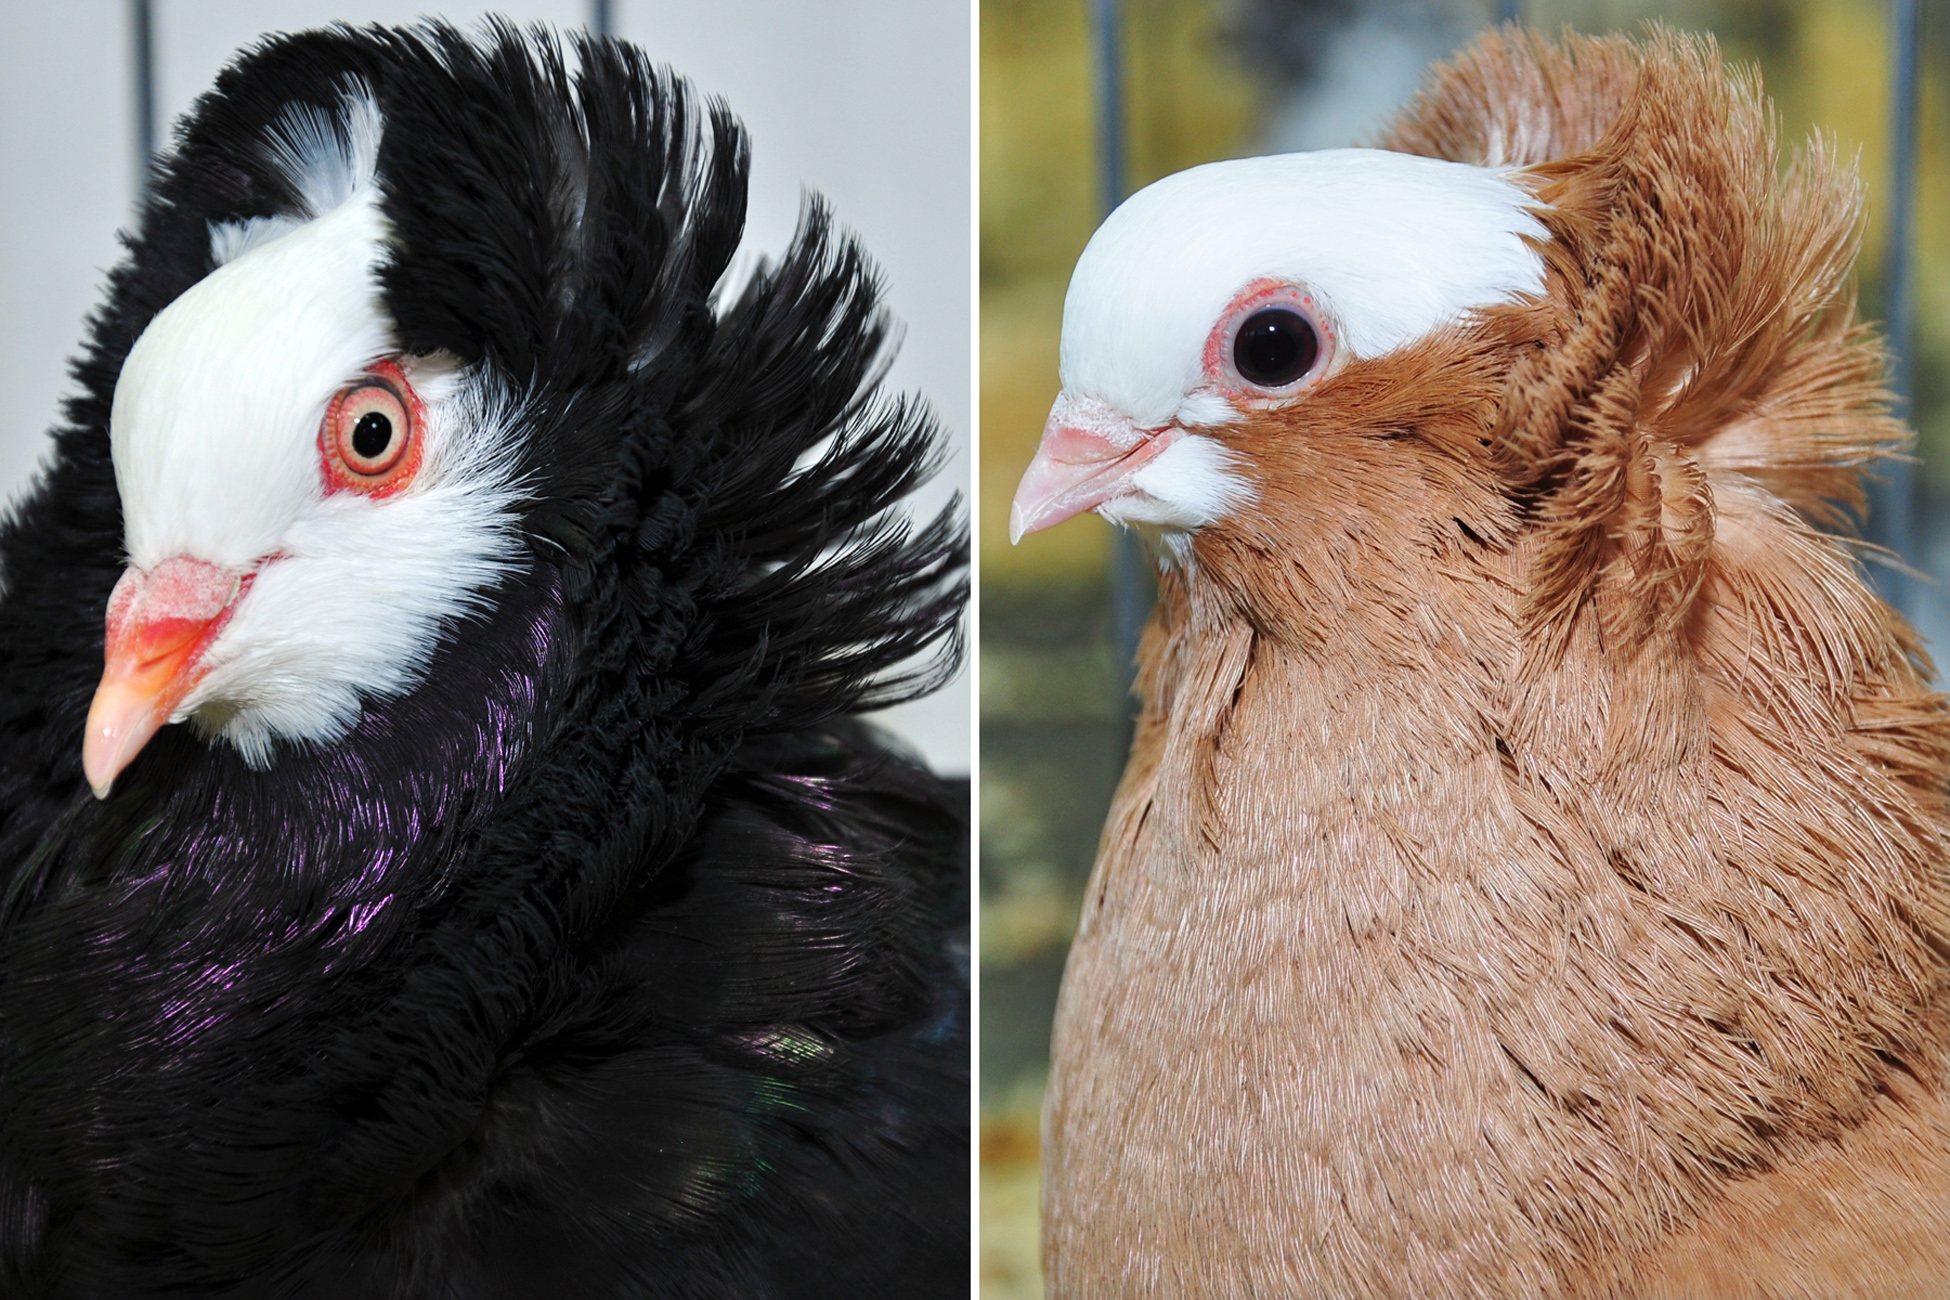 These two pigeon breeds -- the old Dutch capuchine, left, and komorner tumbler, right -- are not closely related, let they both have feathery ornamentation on their heads known as a head crest. These pigeons illustrate the notion that birds of a feather don't always stick together, at least genetically, according to a new University of Utah study of the pigeon family tree.